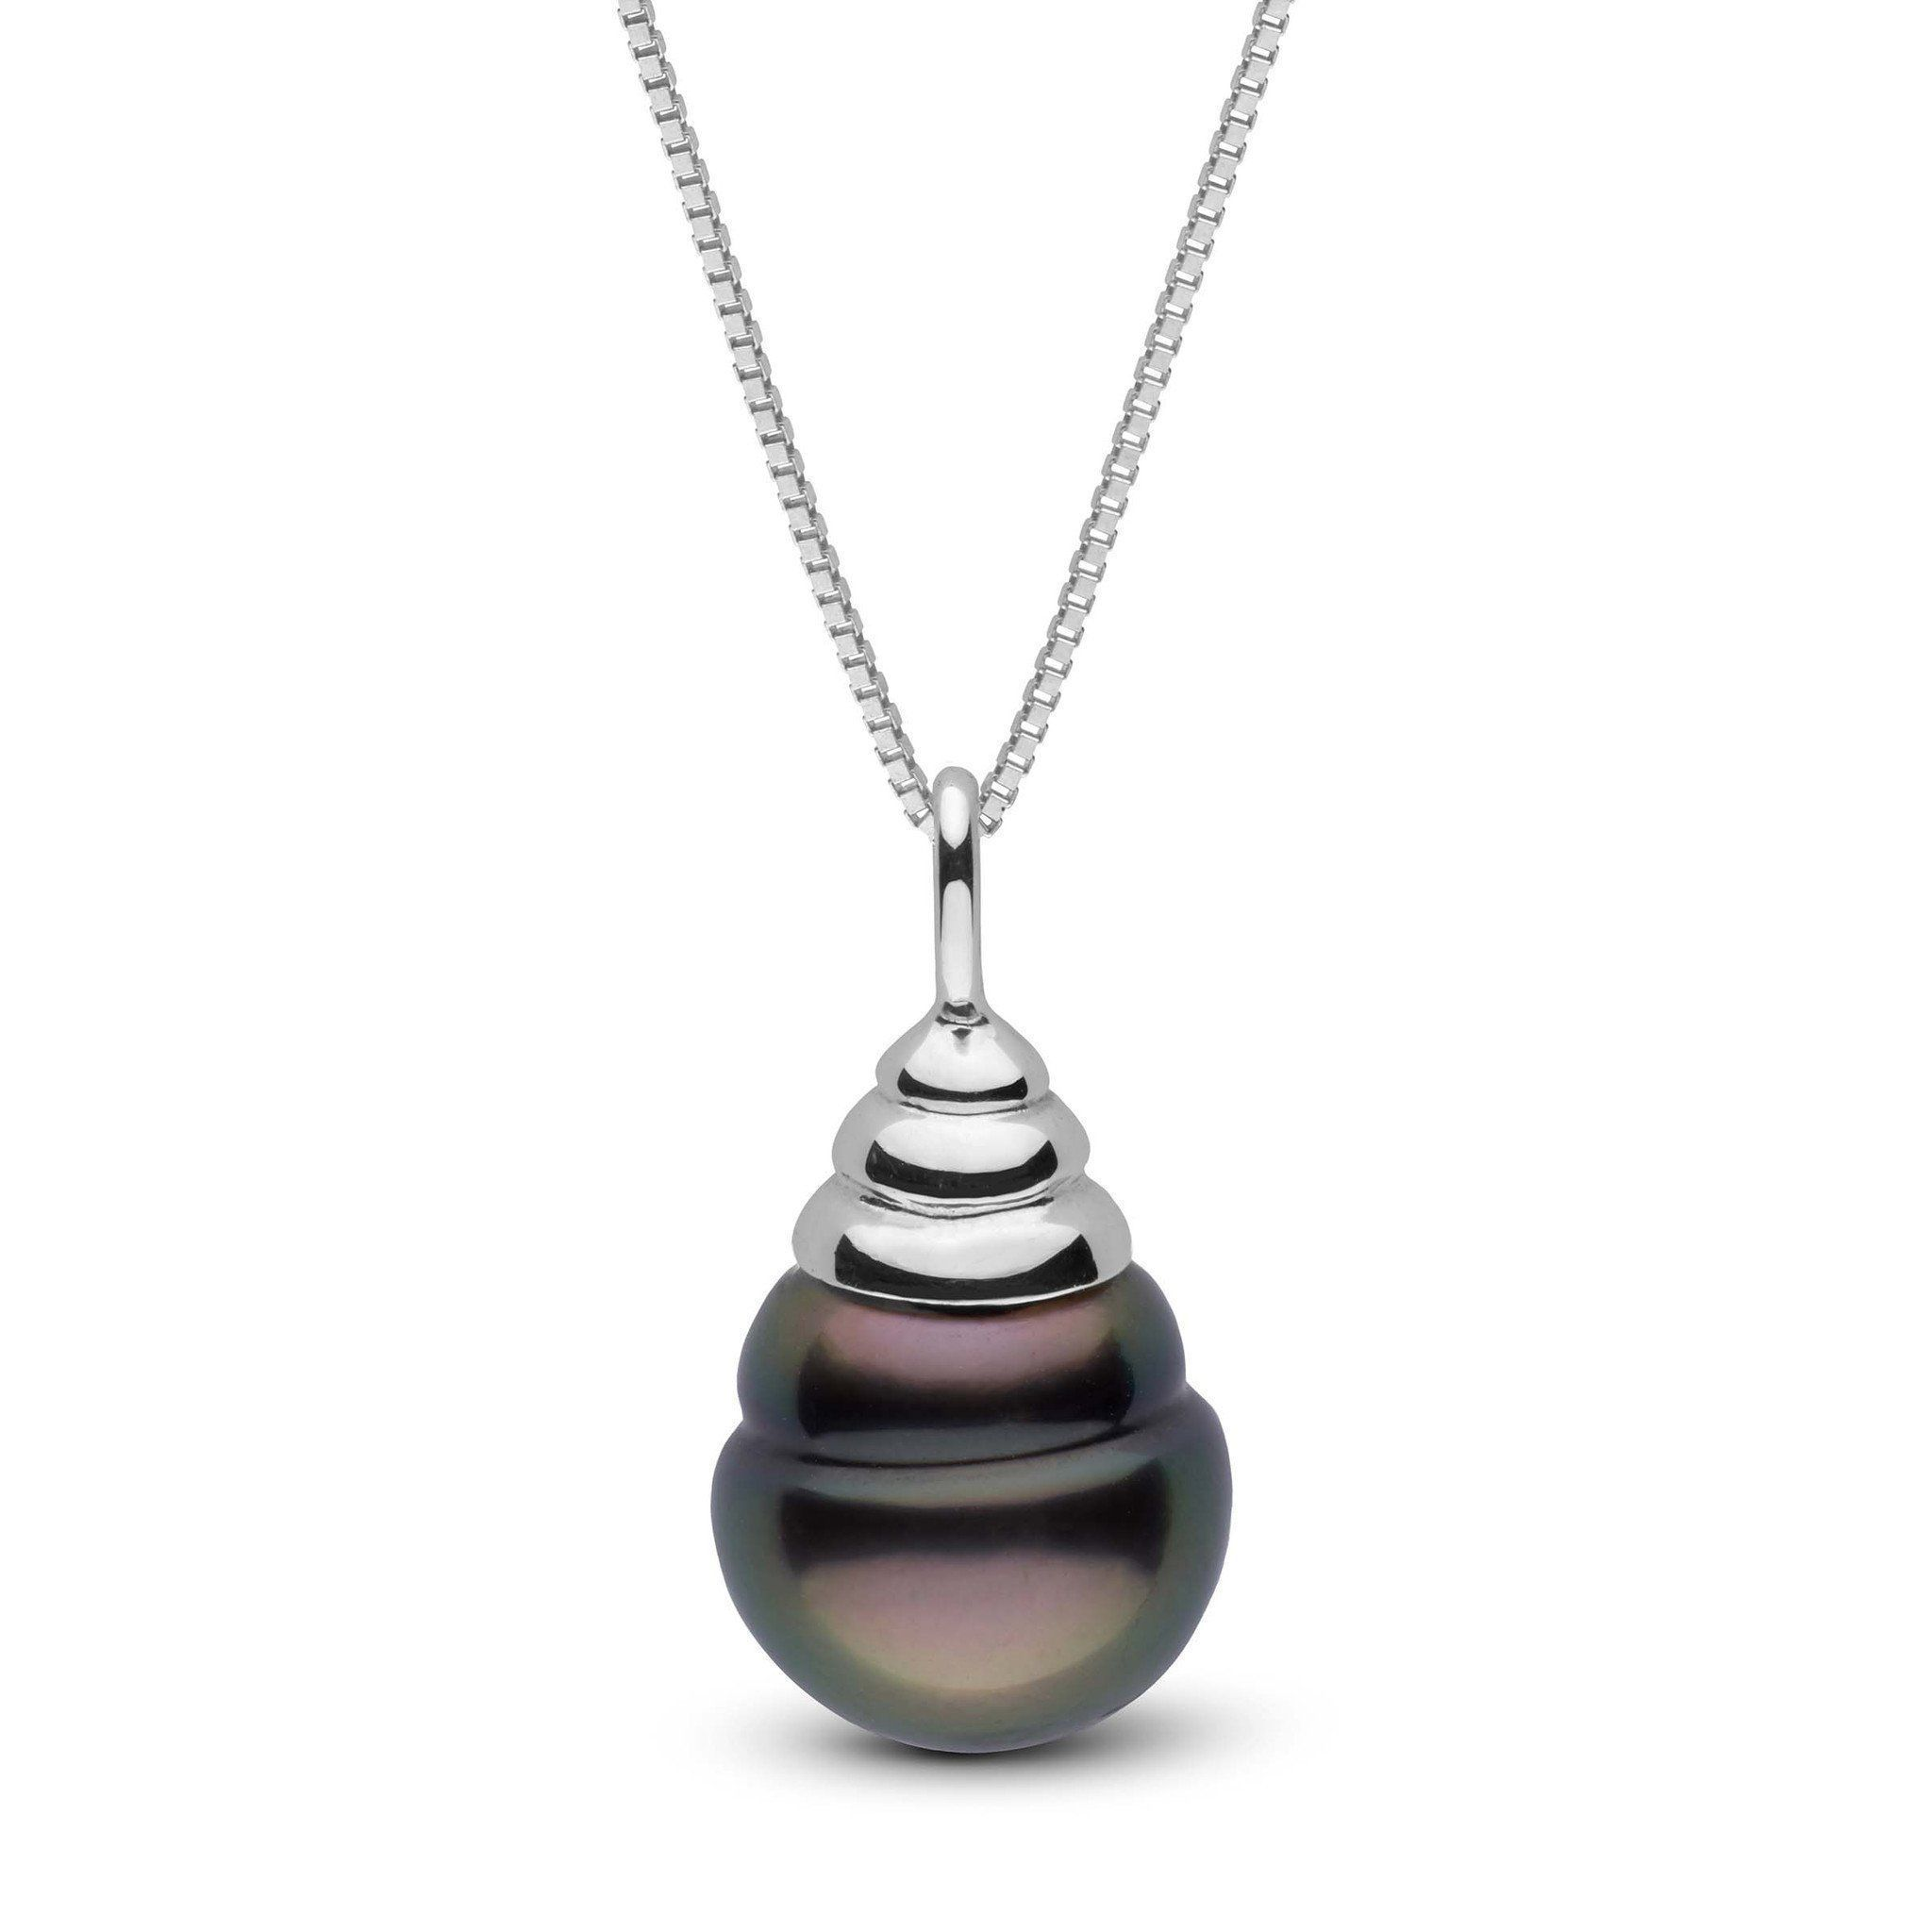 Honey Collection 12.0-13.0 mm Tahitian Baroque Pearl Pendant